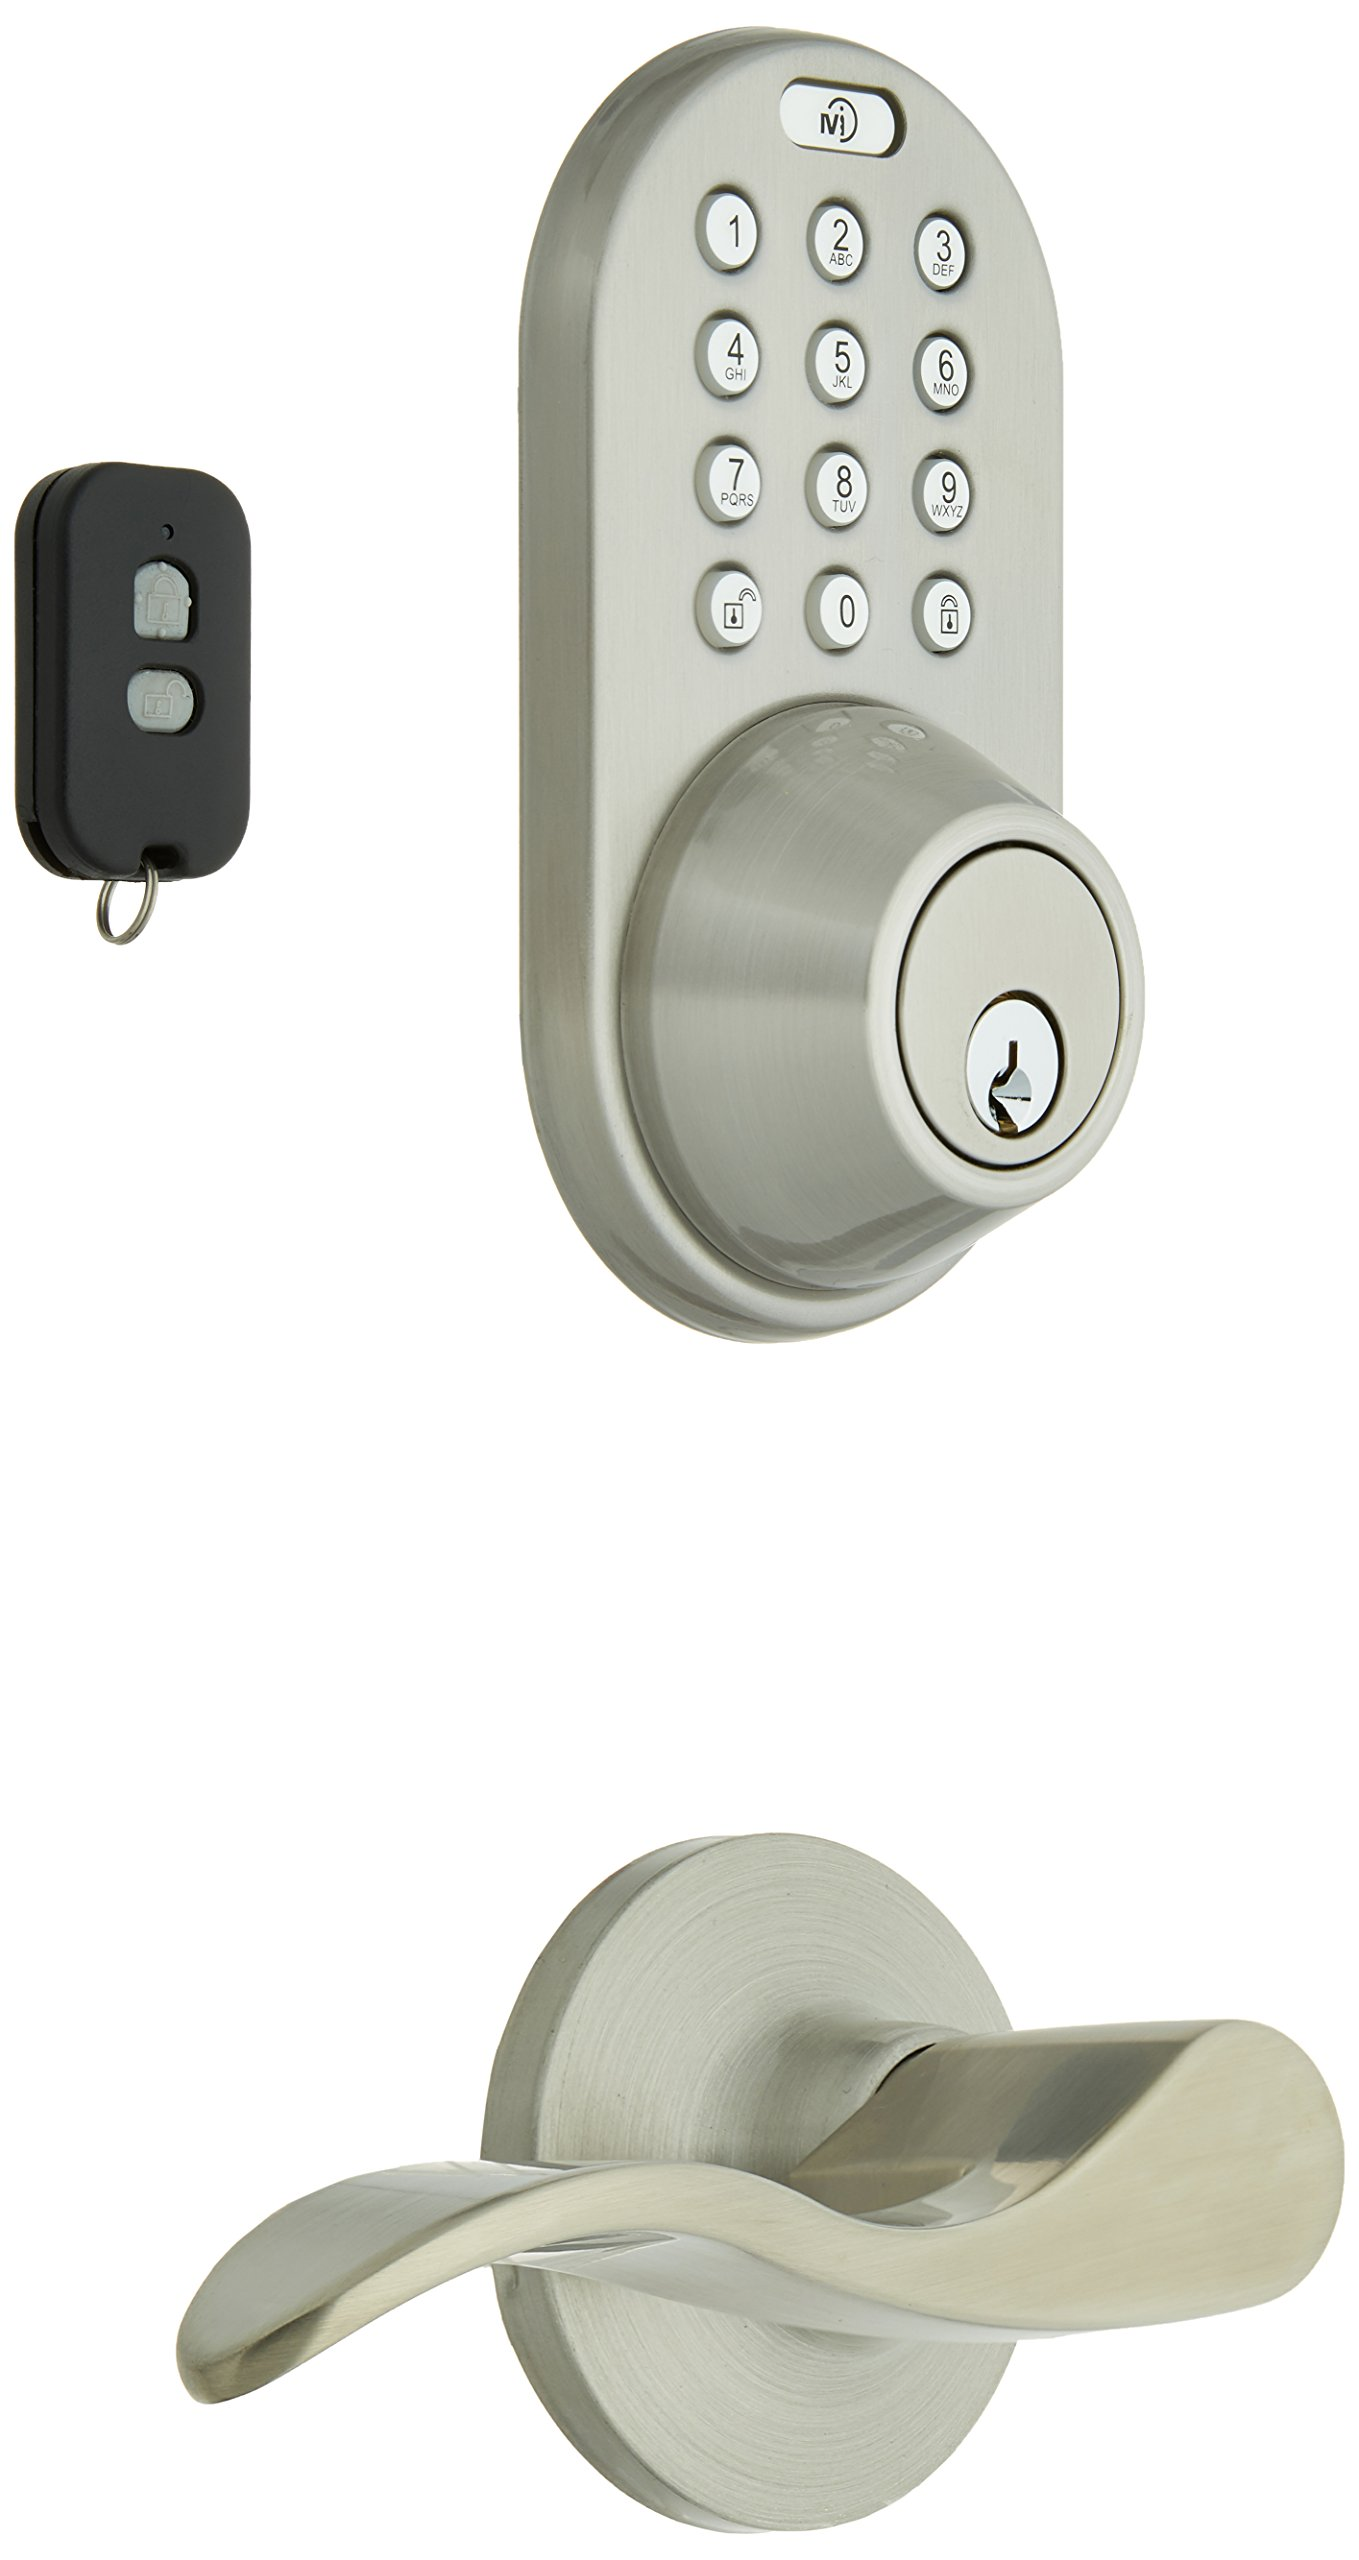 MiLocks XFL-02SN Digital Deadbolt Door Lock and Passage Lever Handle Combo with Keyless Entry via Remote Control and Keypad Code for Exterior Doors, Satin Nickel